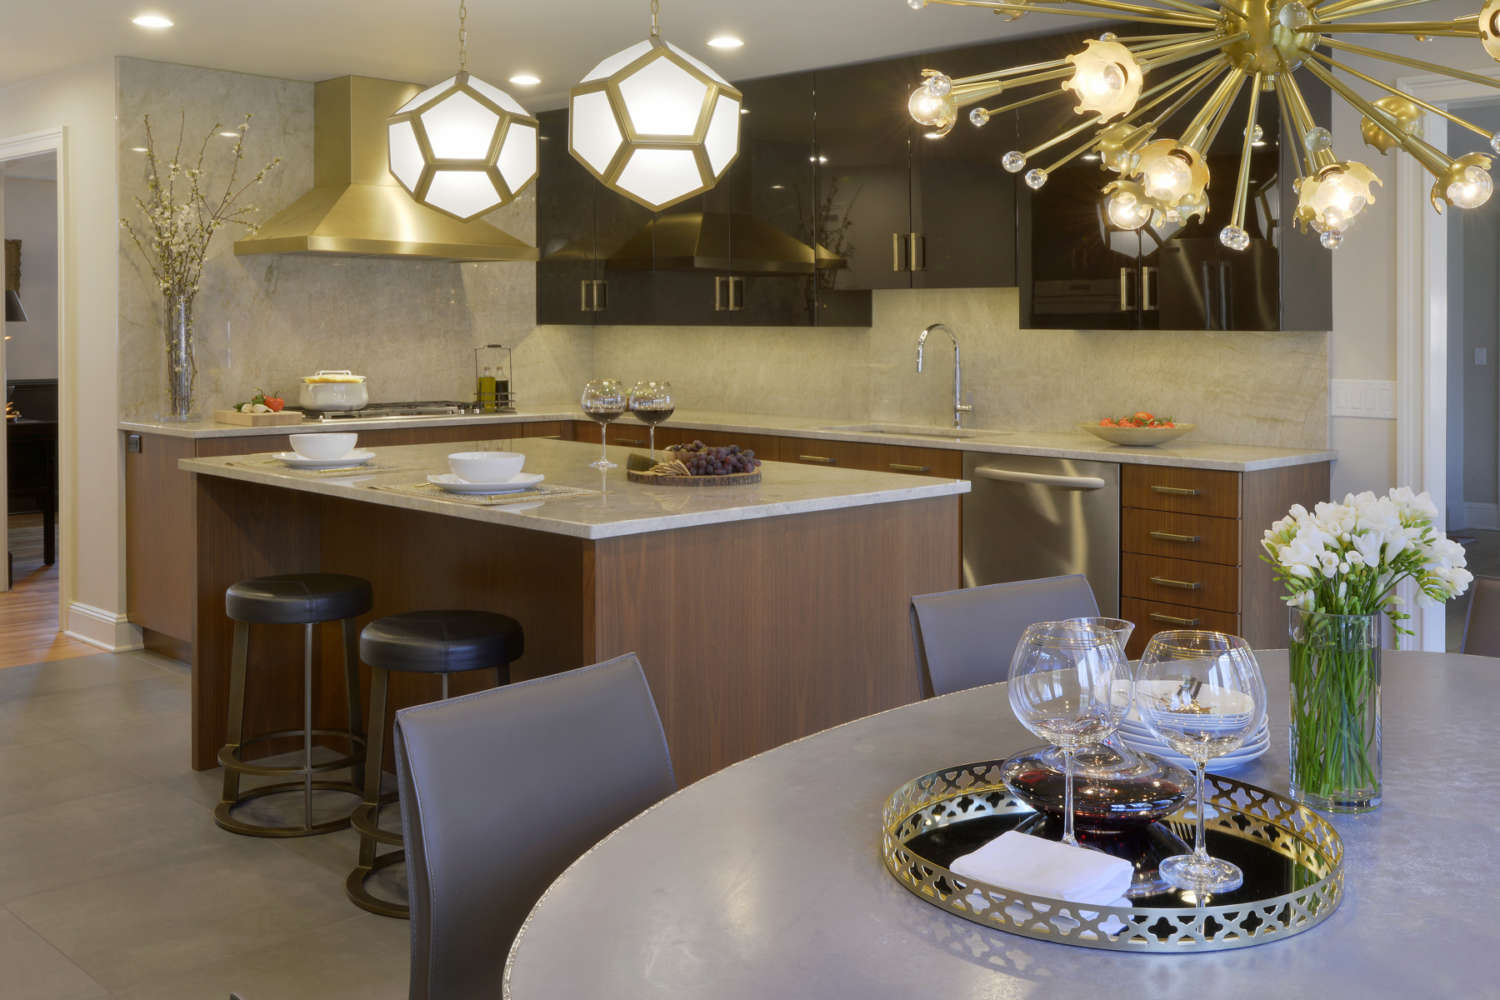 Contemporary kitchen features flat panel, frameless fully custom Artcraft cabinetry in a mix of walnut and high gloss black with gold accents, an island with seating and light quartz countertops. Design by Danielle Florie of Bilotta Kitchens.